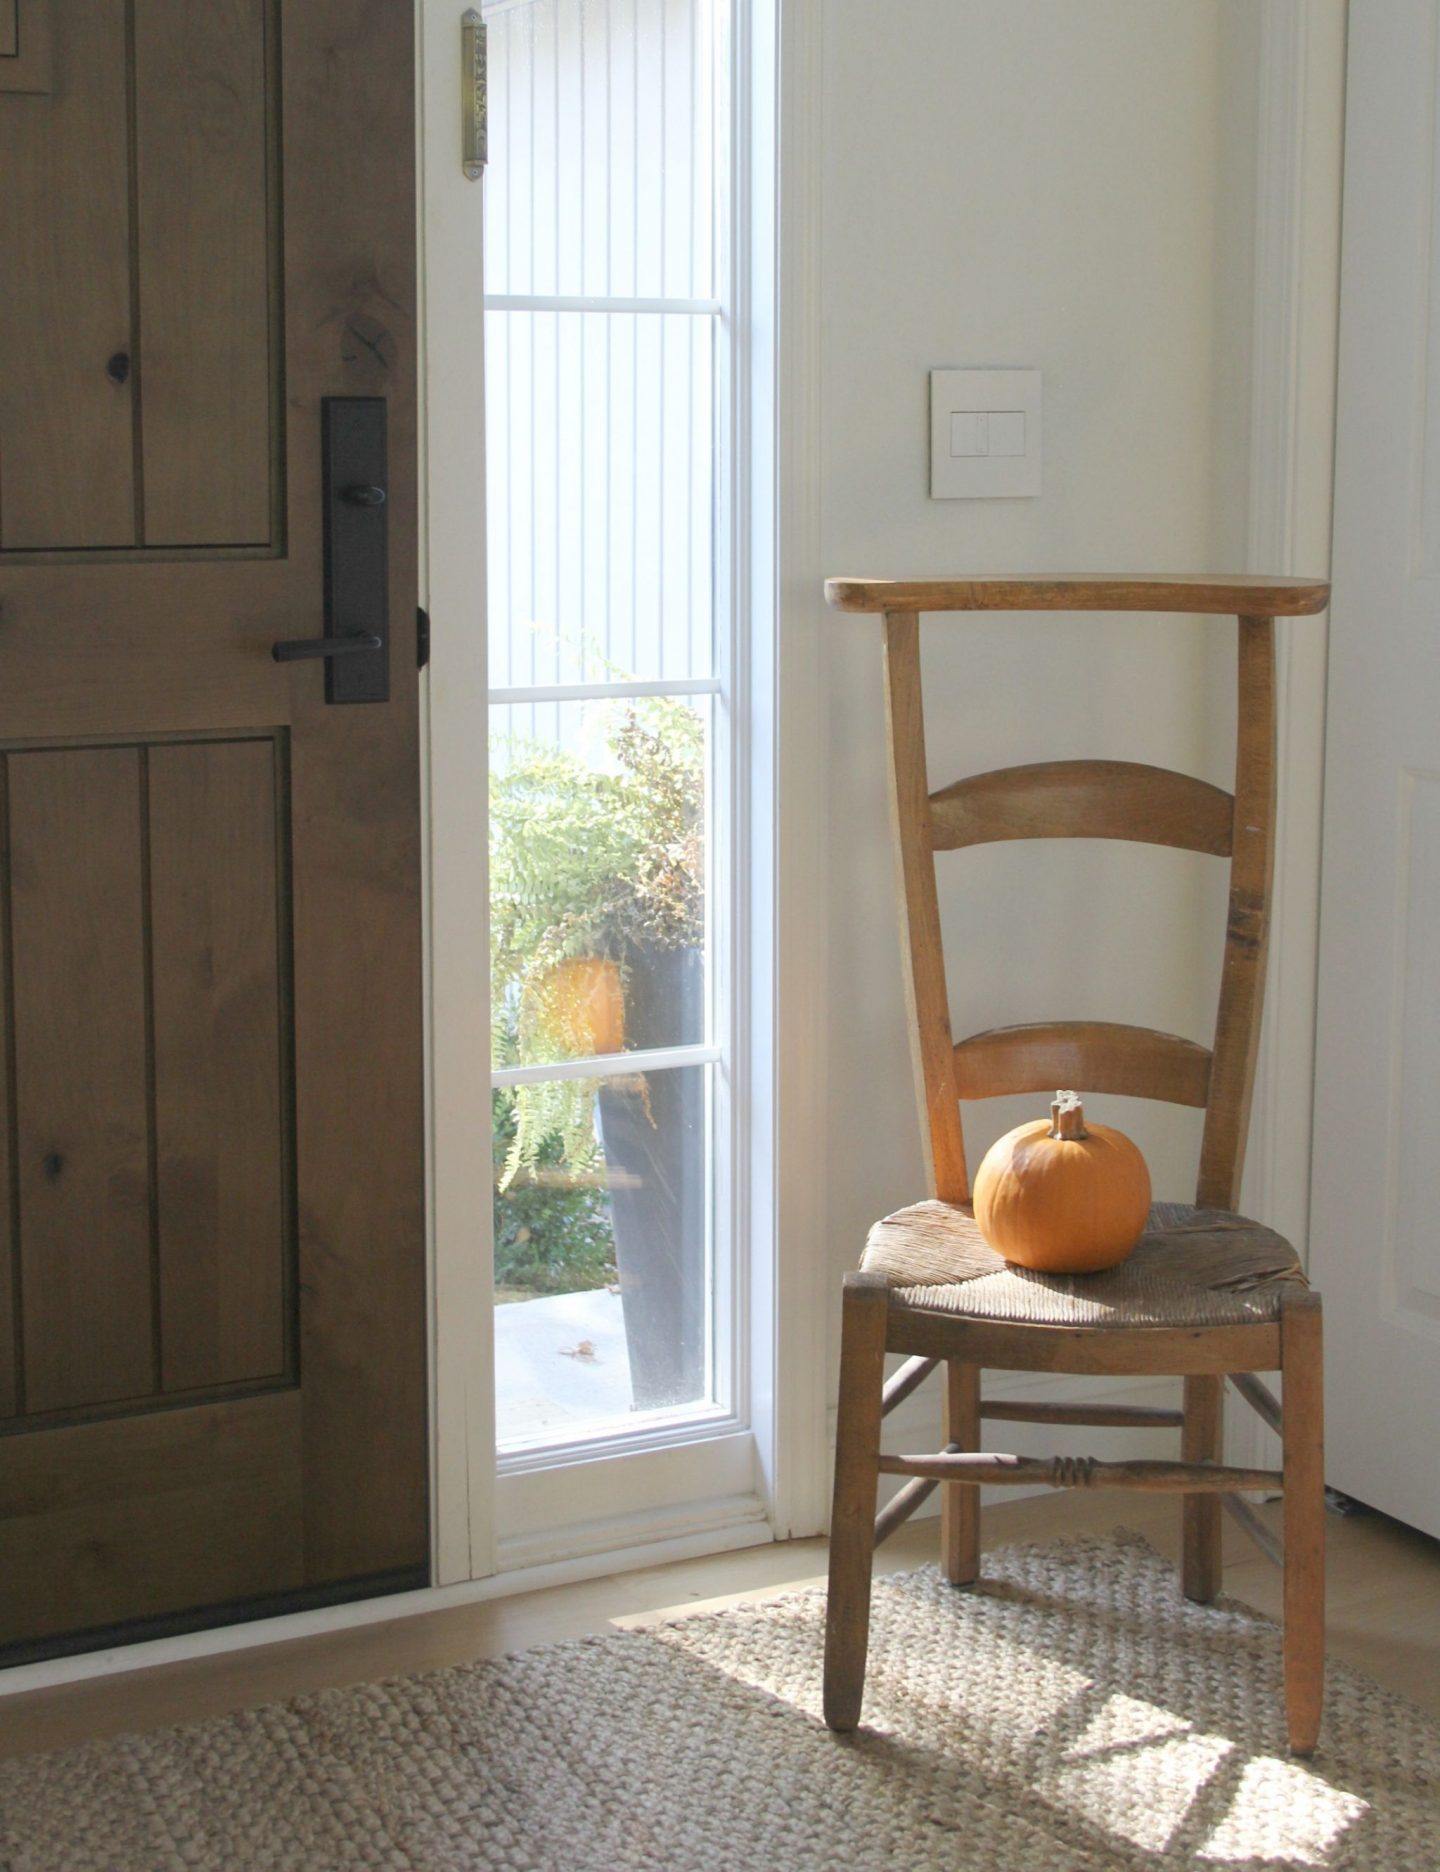 French prayer chair with orange fall pumpkin my entry - Hello Lovely Studio.